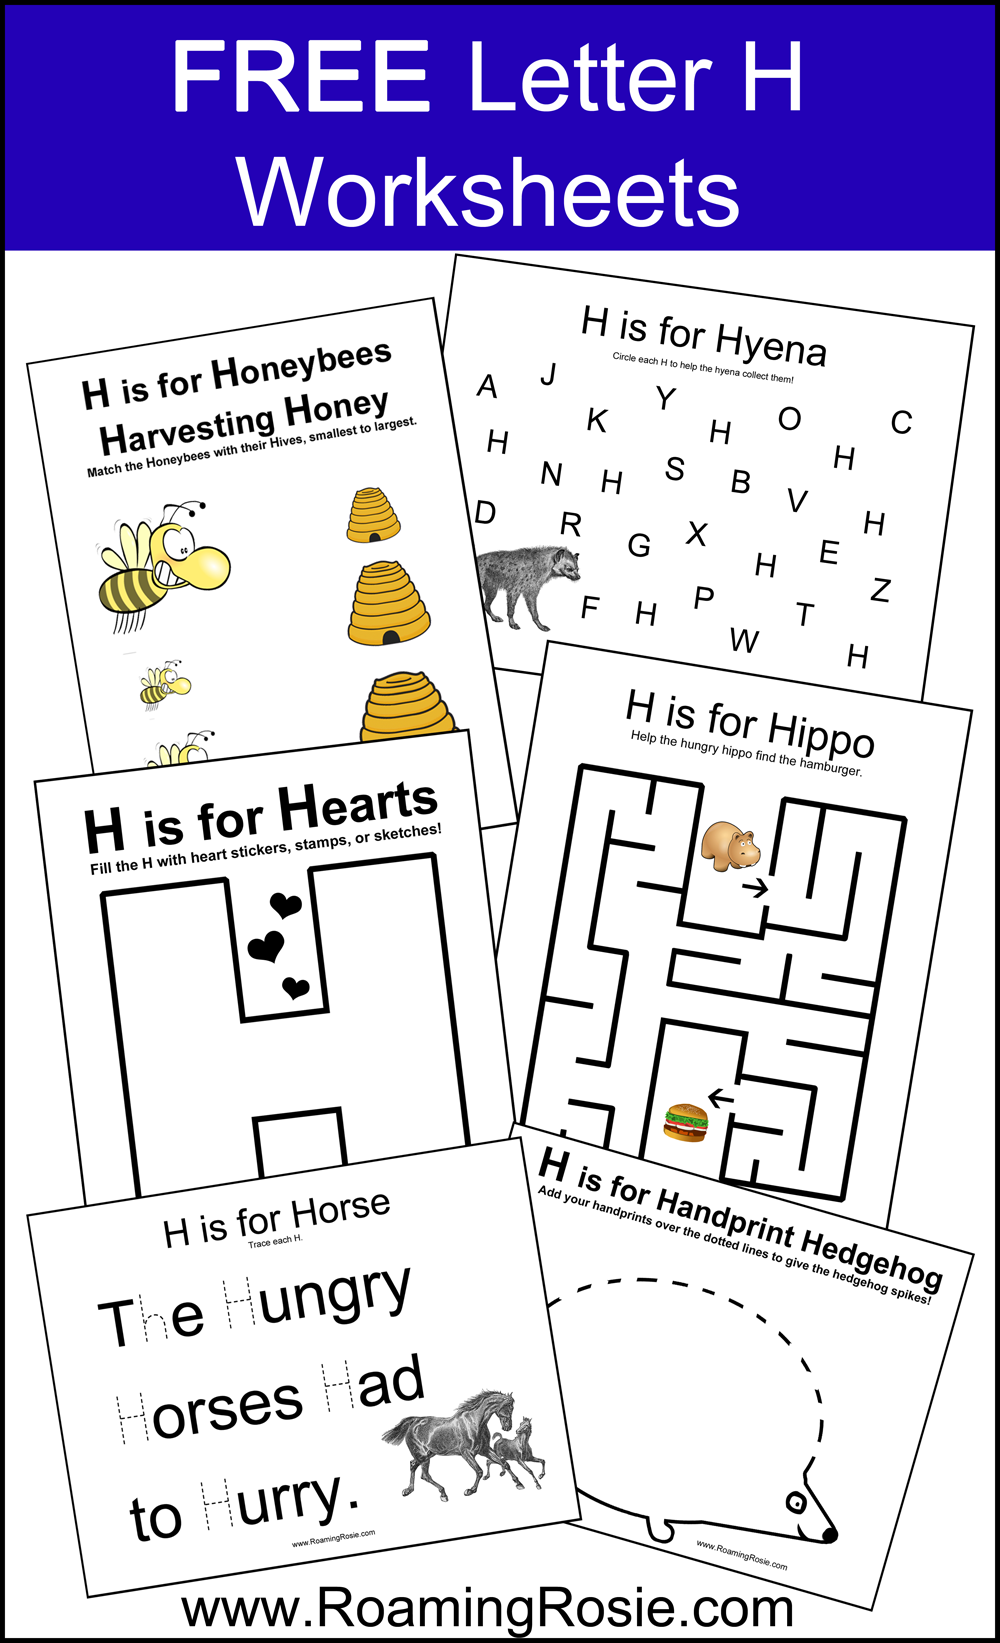 FREE Printable Letter H Alphabet Activities Worksheets from Roaming ...